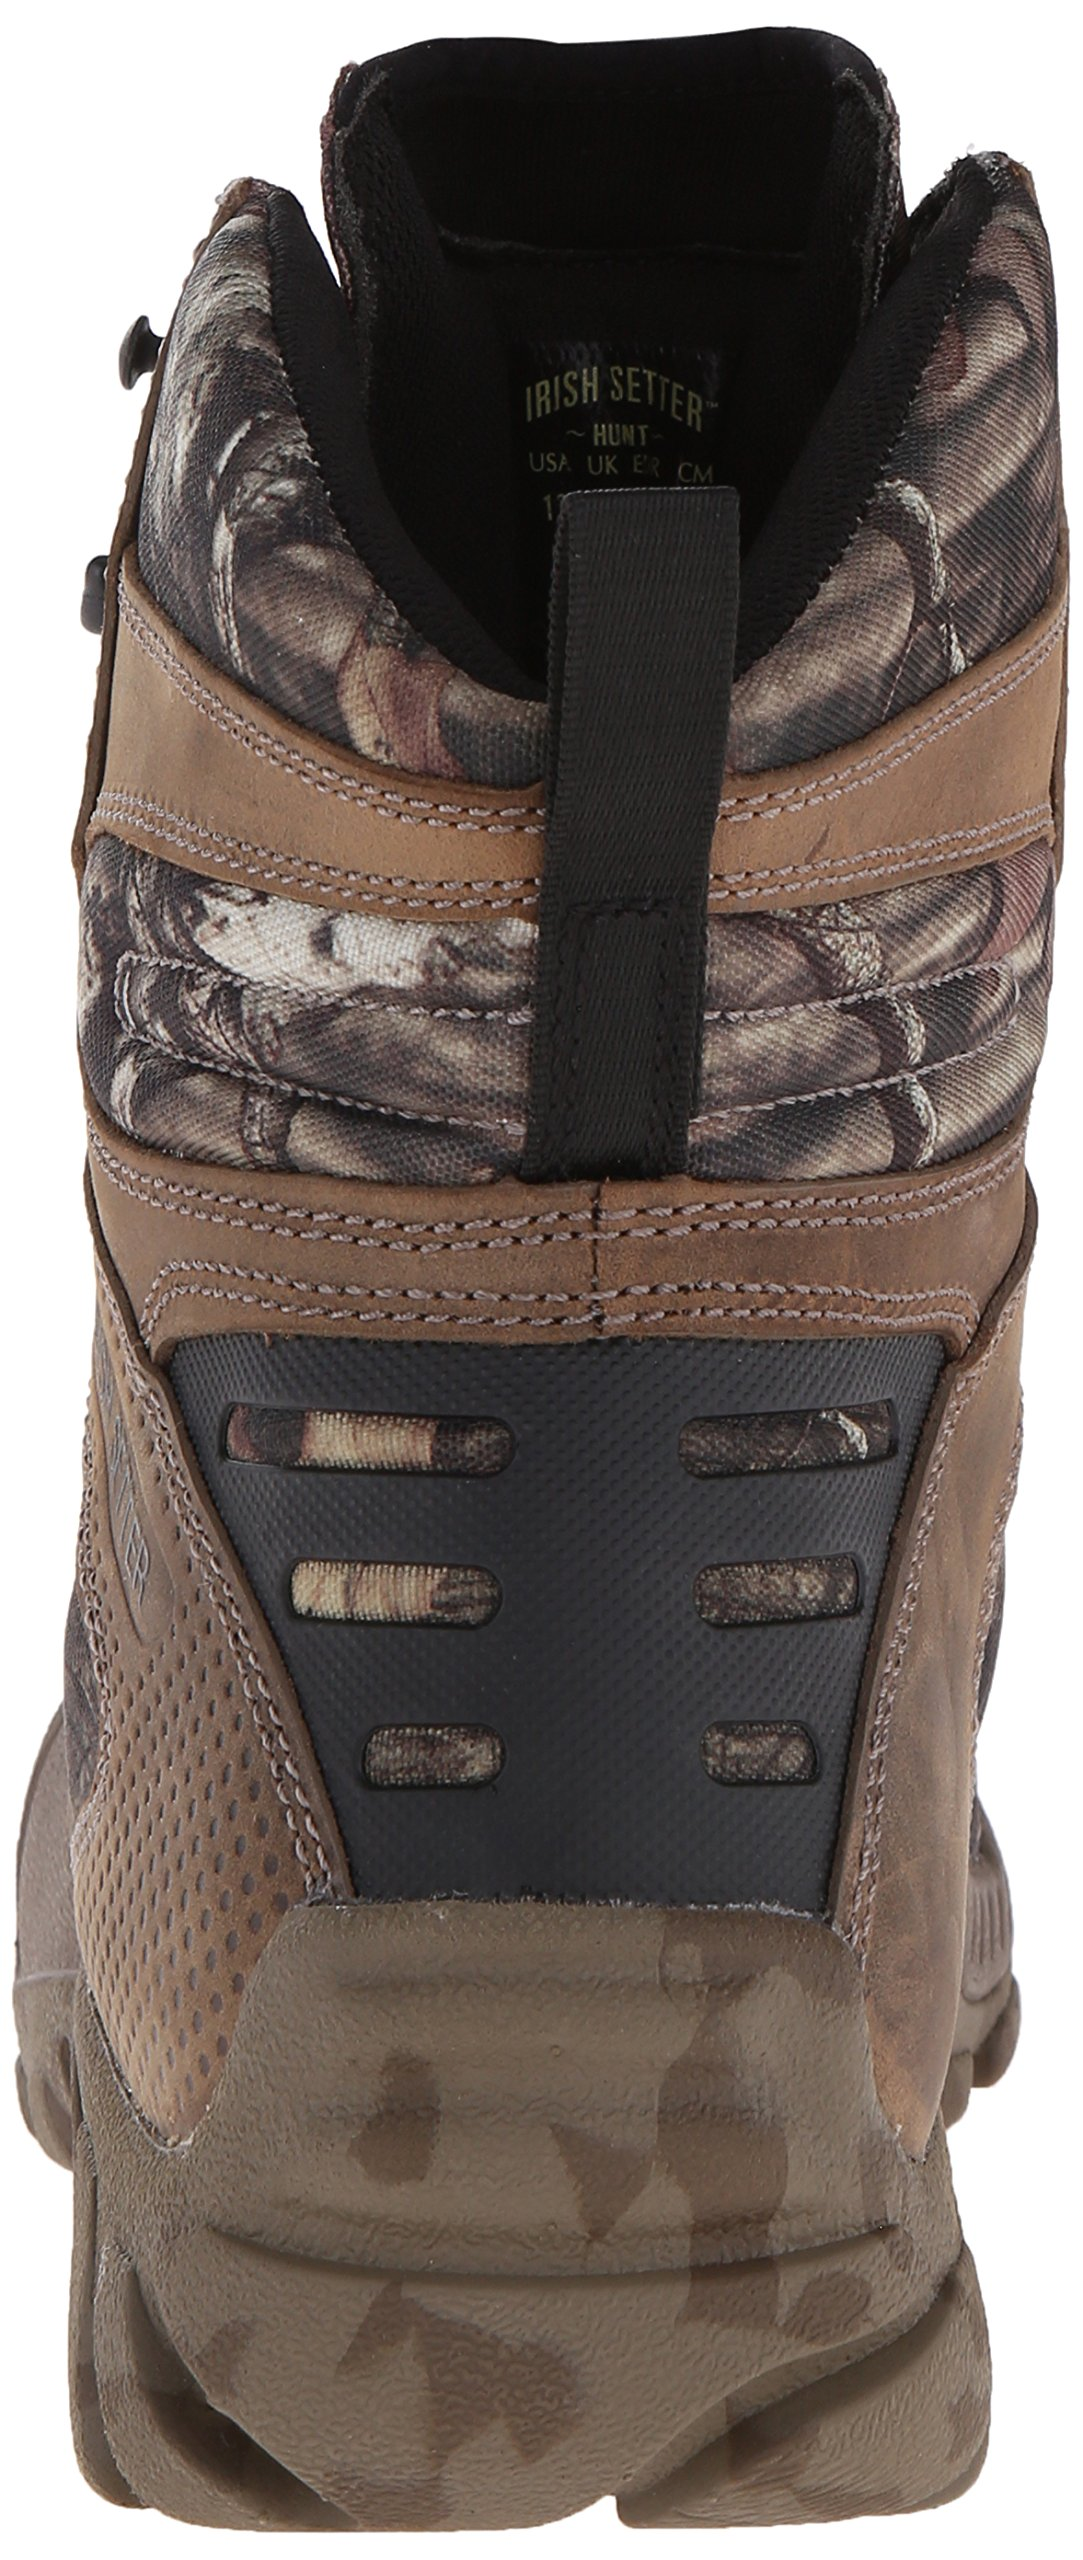 Irish Setter Men's 2868 Vaprtrek Waterproof 8'' Hunting Boot, Mossy Oak Break Up Infinity Camouflage,10 EE US by Irish Setter (Image #2)